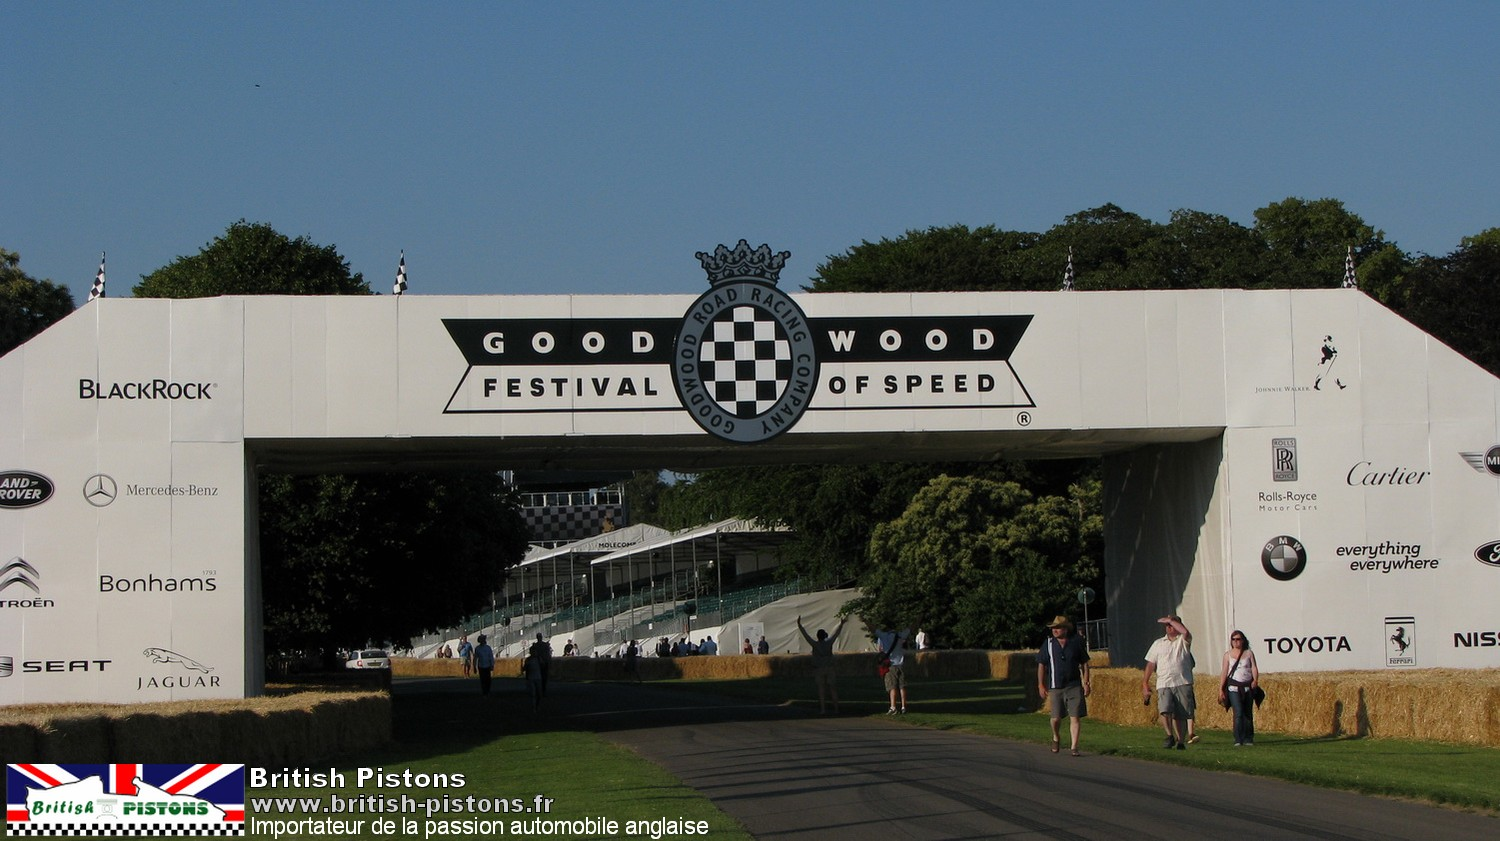 goodwood-festival-of-speed-2011-80.jpg